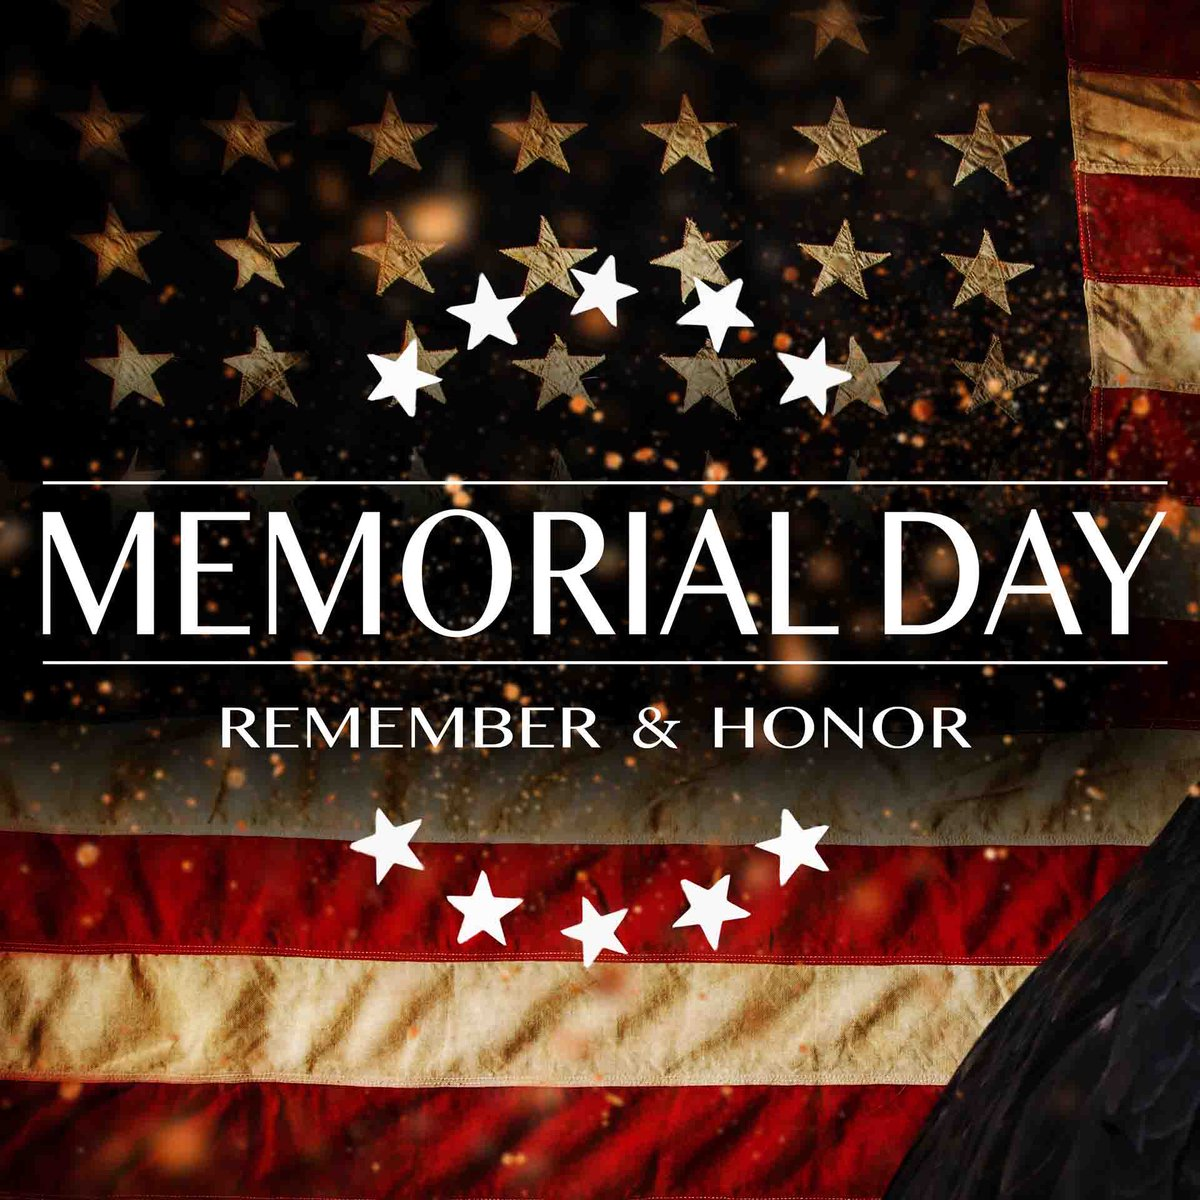 ...we remember. Thank you.  🦅🇺🇸  #MemorialDay2020 #MemorialDay #RememberAndHonor #USA #army #navy #airforce #marines #coastguard #military #red #white #blue #sacrifice #country #flag #freedom #price #love #weremember